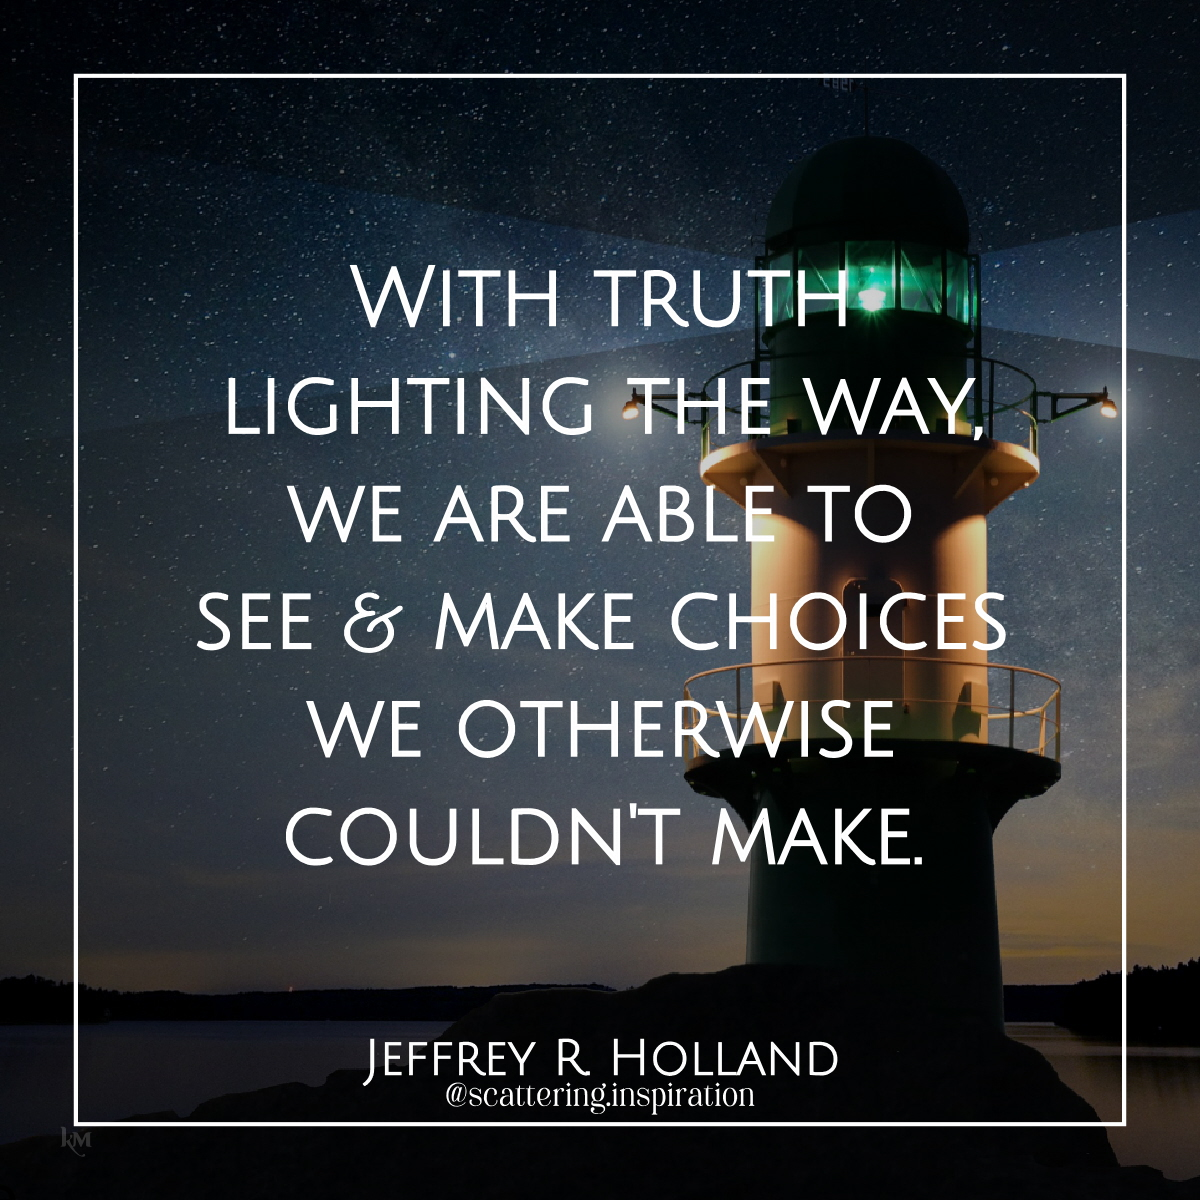 with truth lighting the way